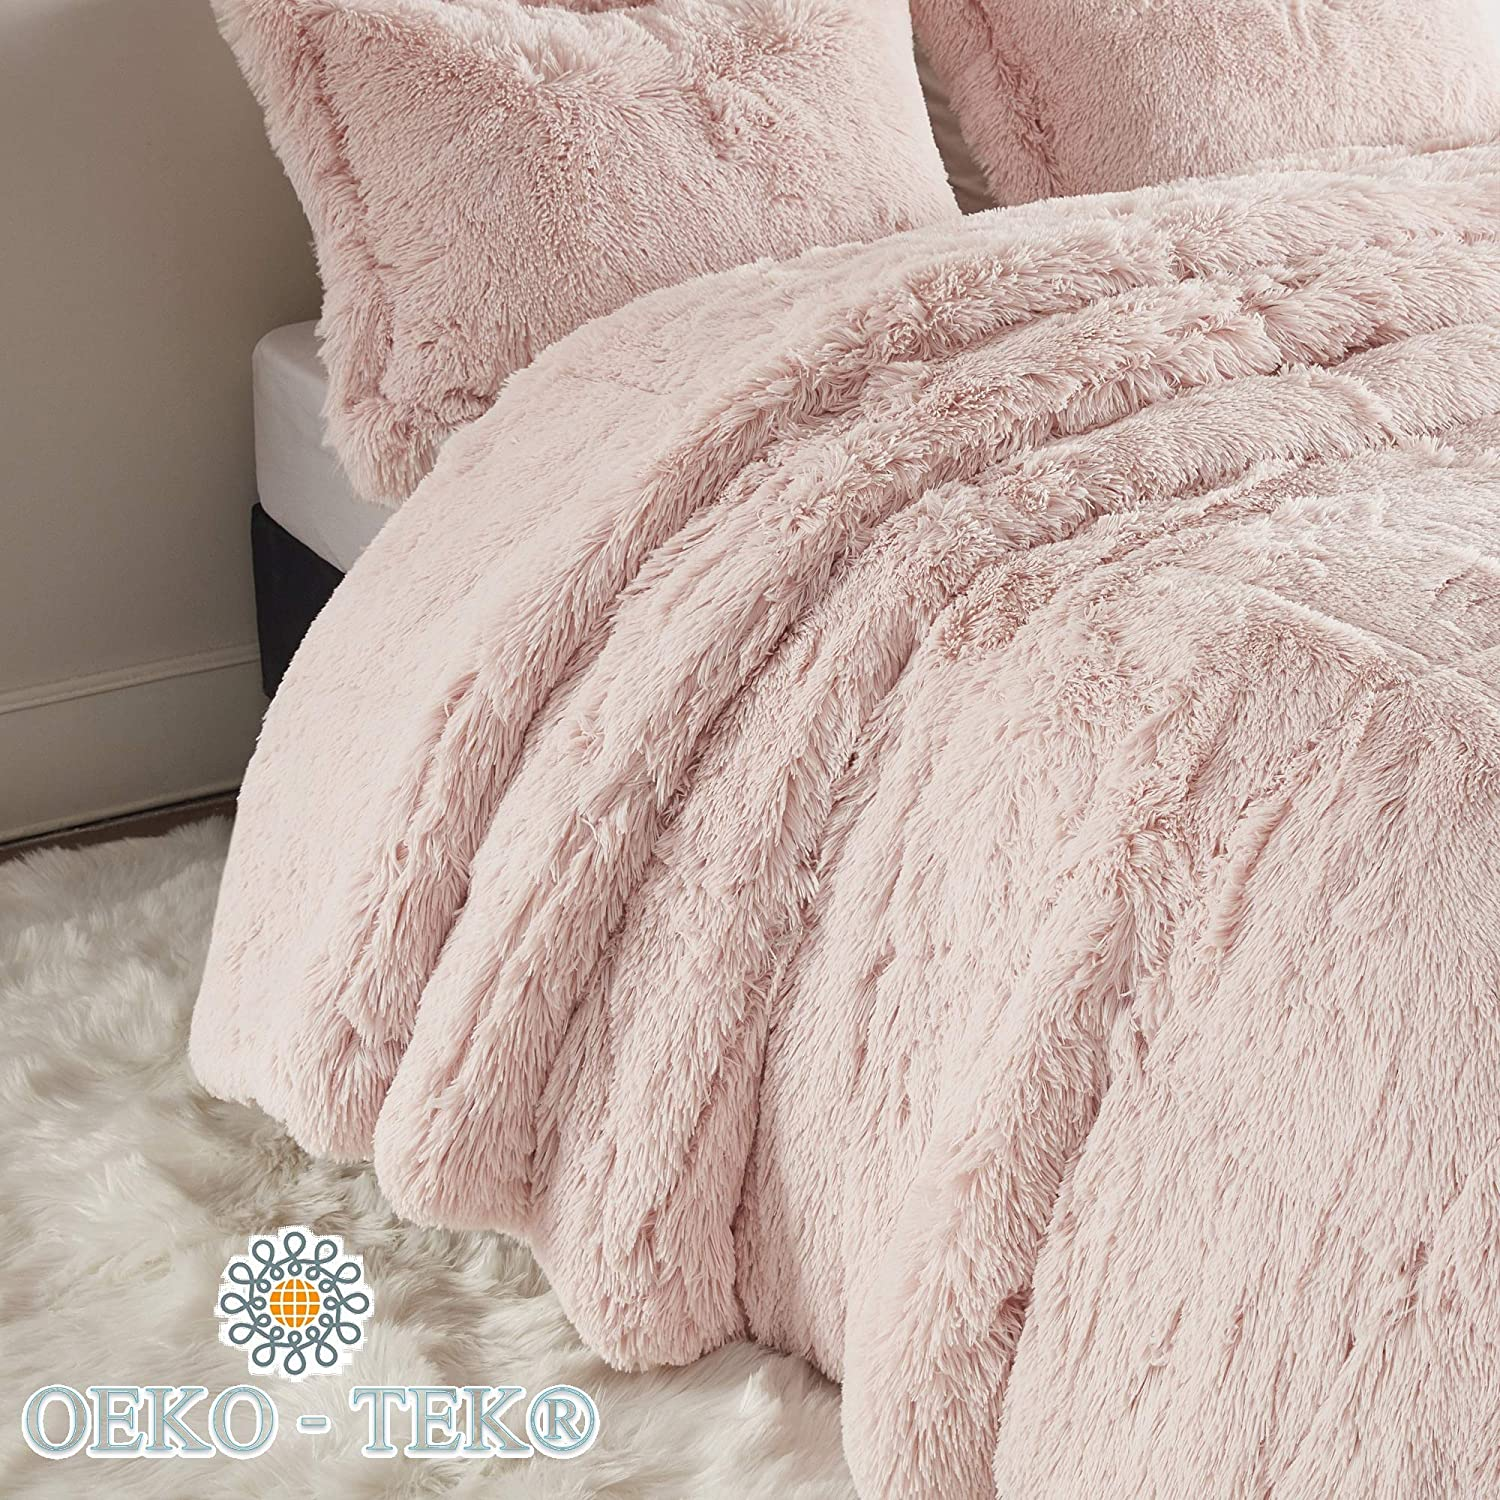 Blush Intelligent Design Malea 2 Piece Shaggy Faux Fur Comforter Solid Plush Double Sided Box Design Modern Casual All Season Quilt Bedding Set with Matching Sham Twin//Twin XL